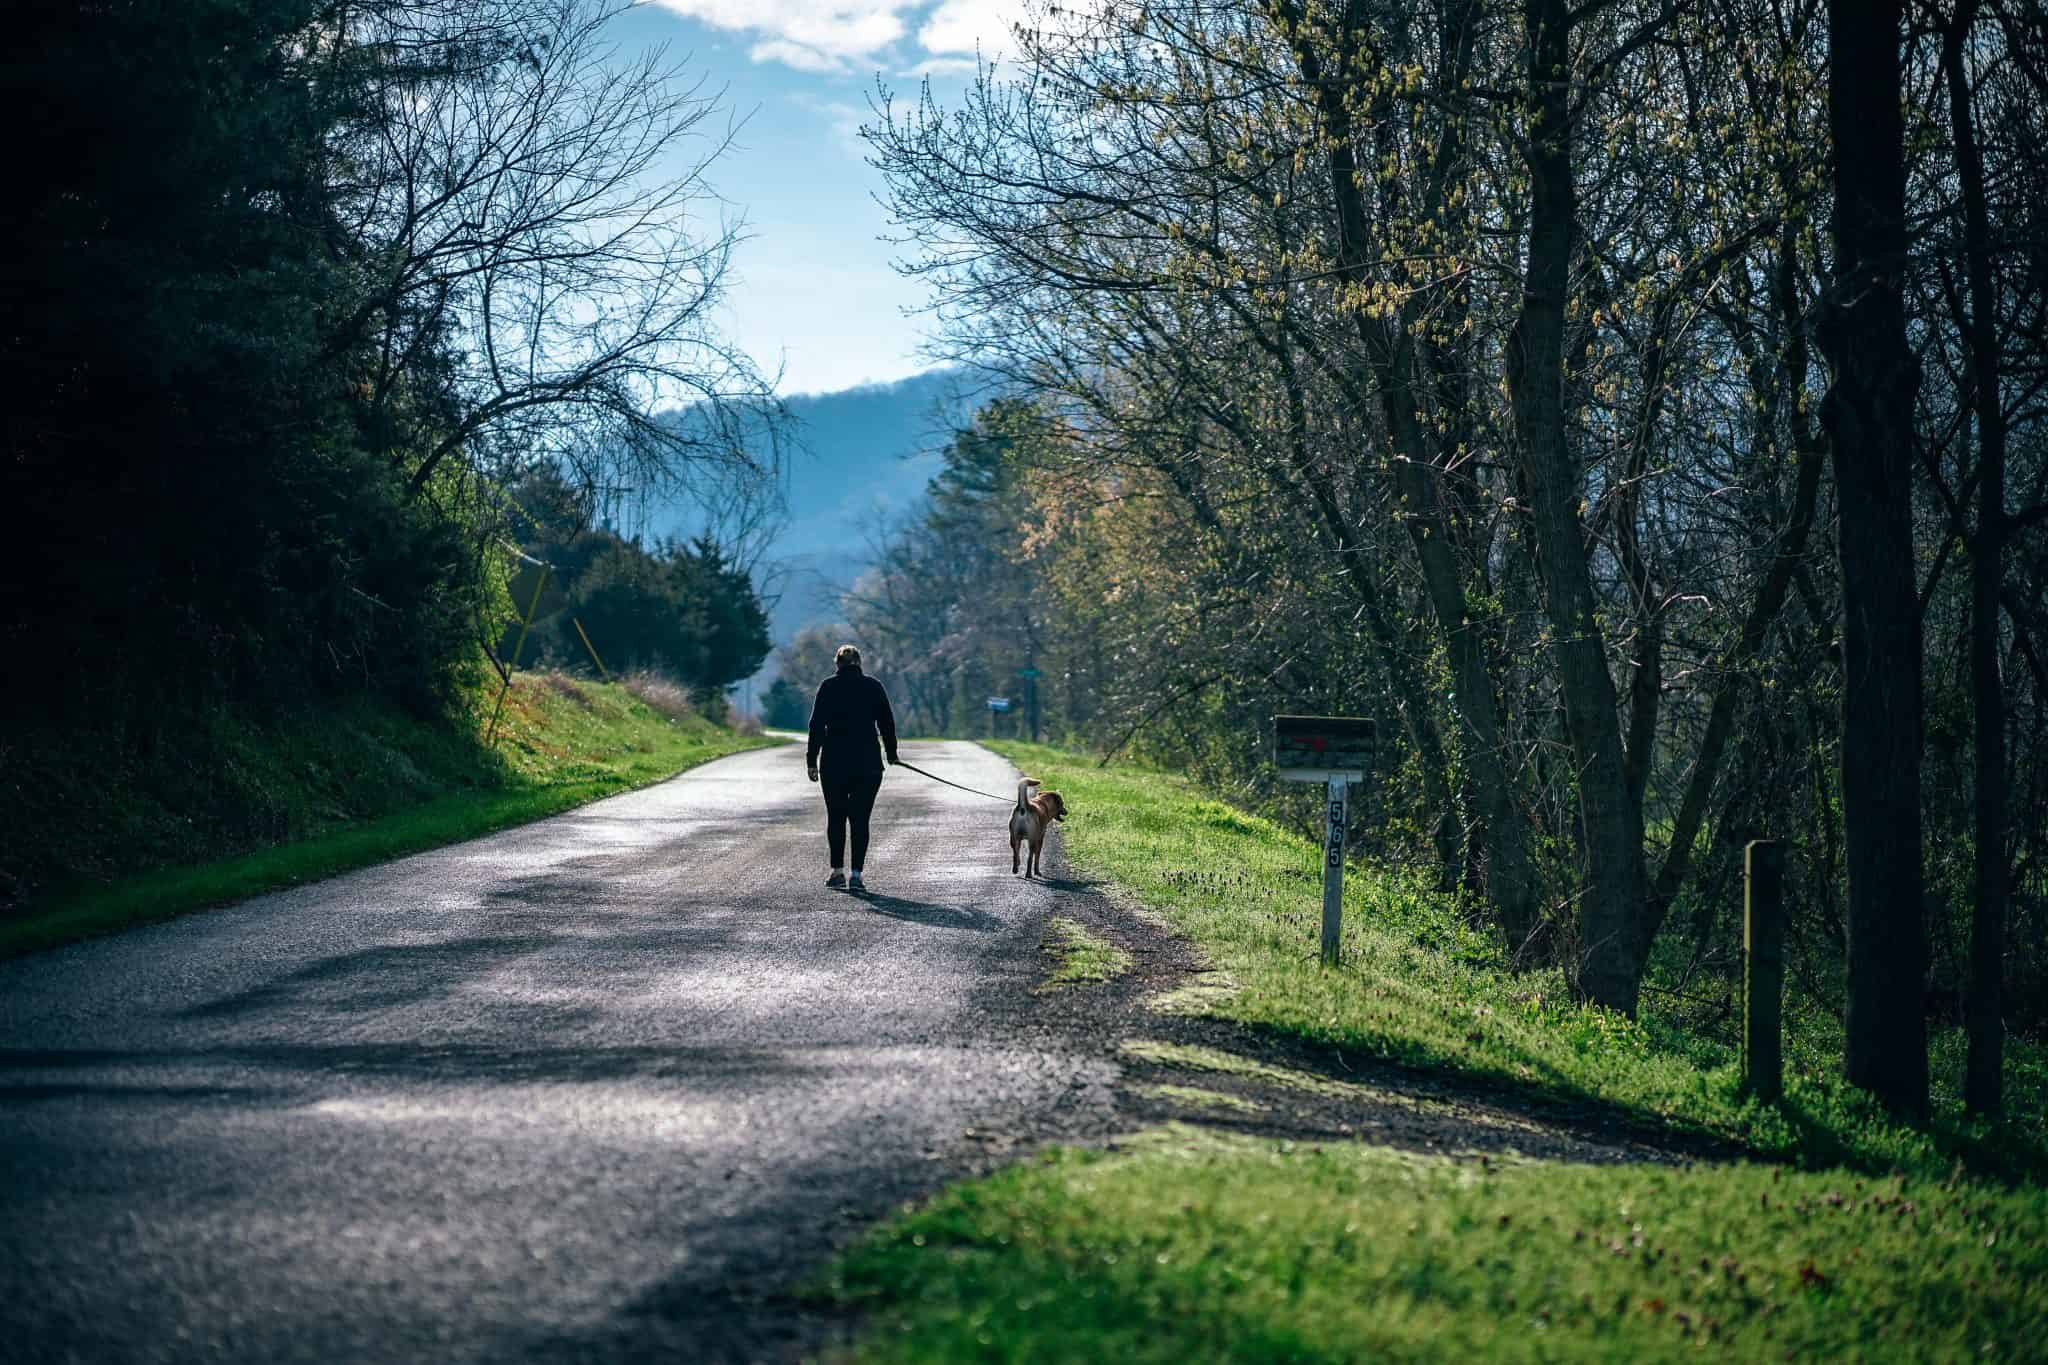 Dog on a walk in the countryside with trees